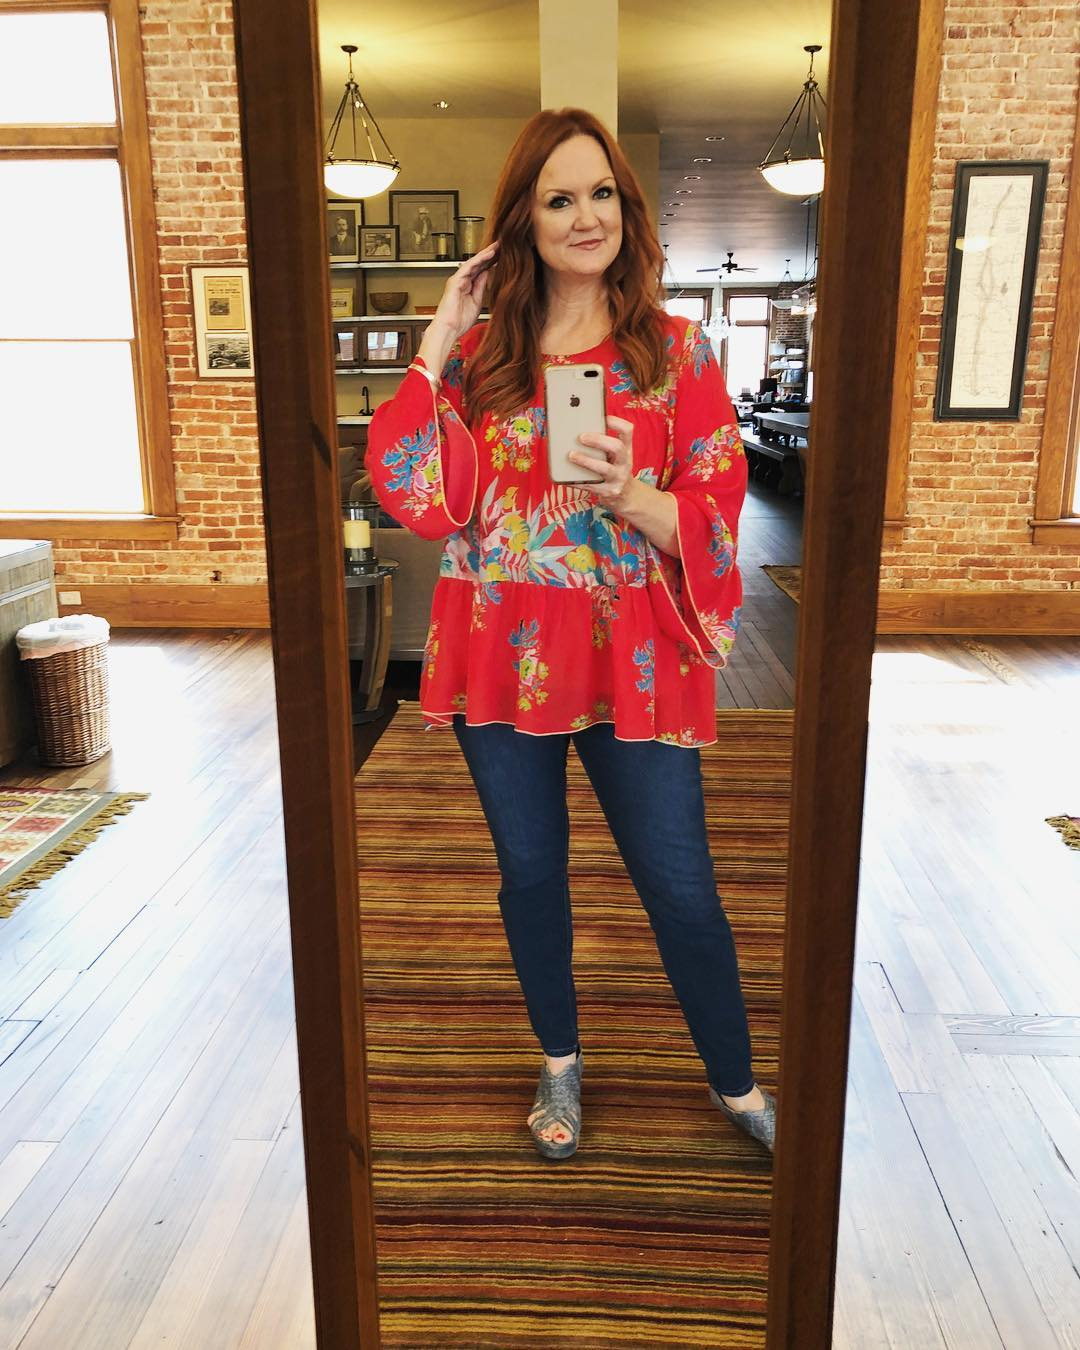 Where Does Ree Drummond Live? Photos of the Chef's Oklahoma Home